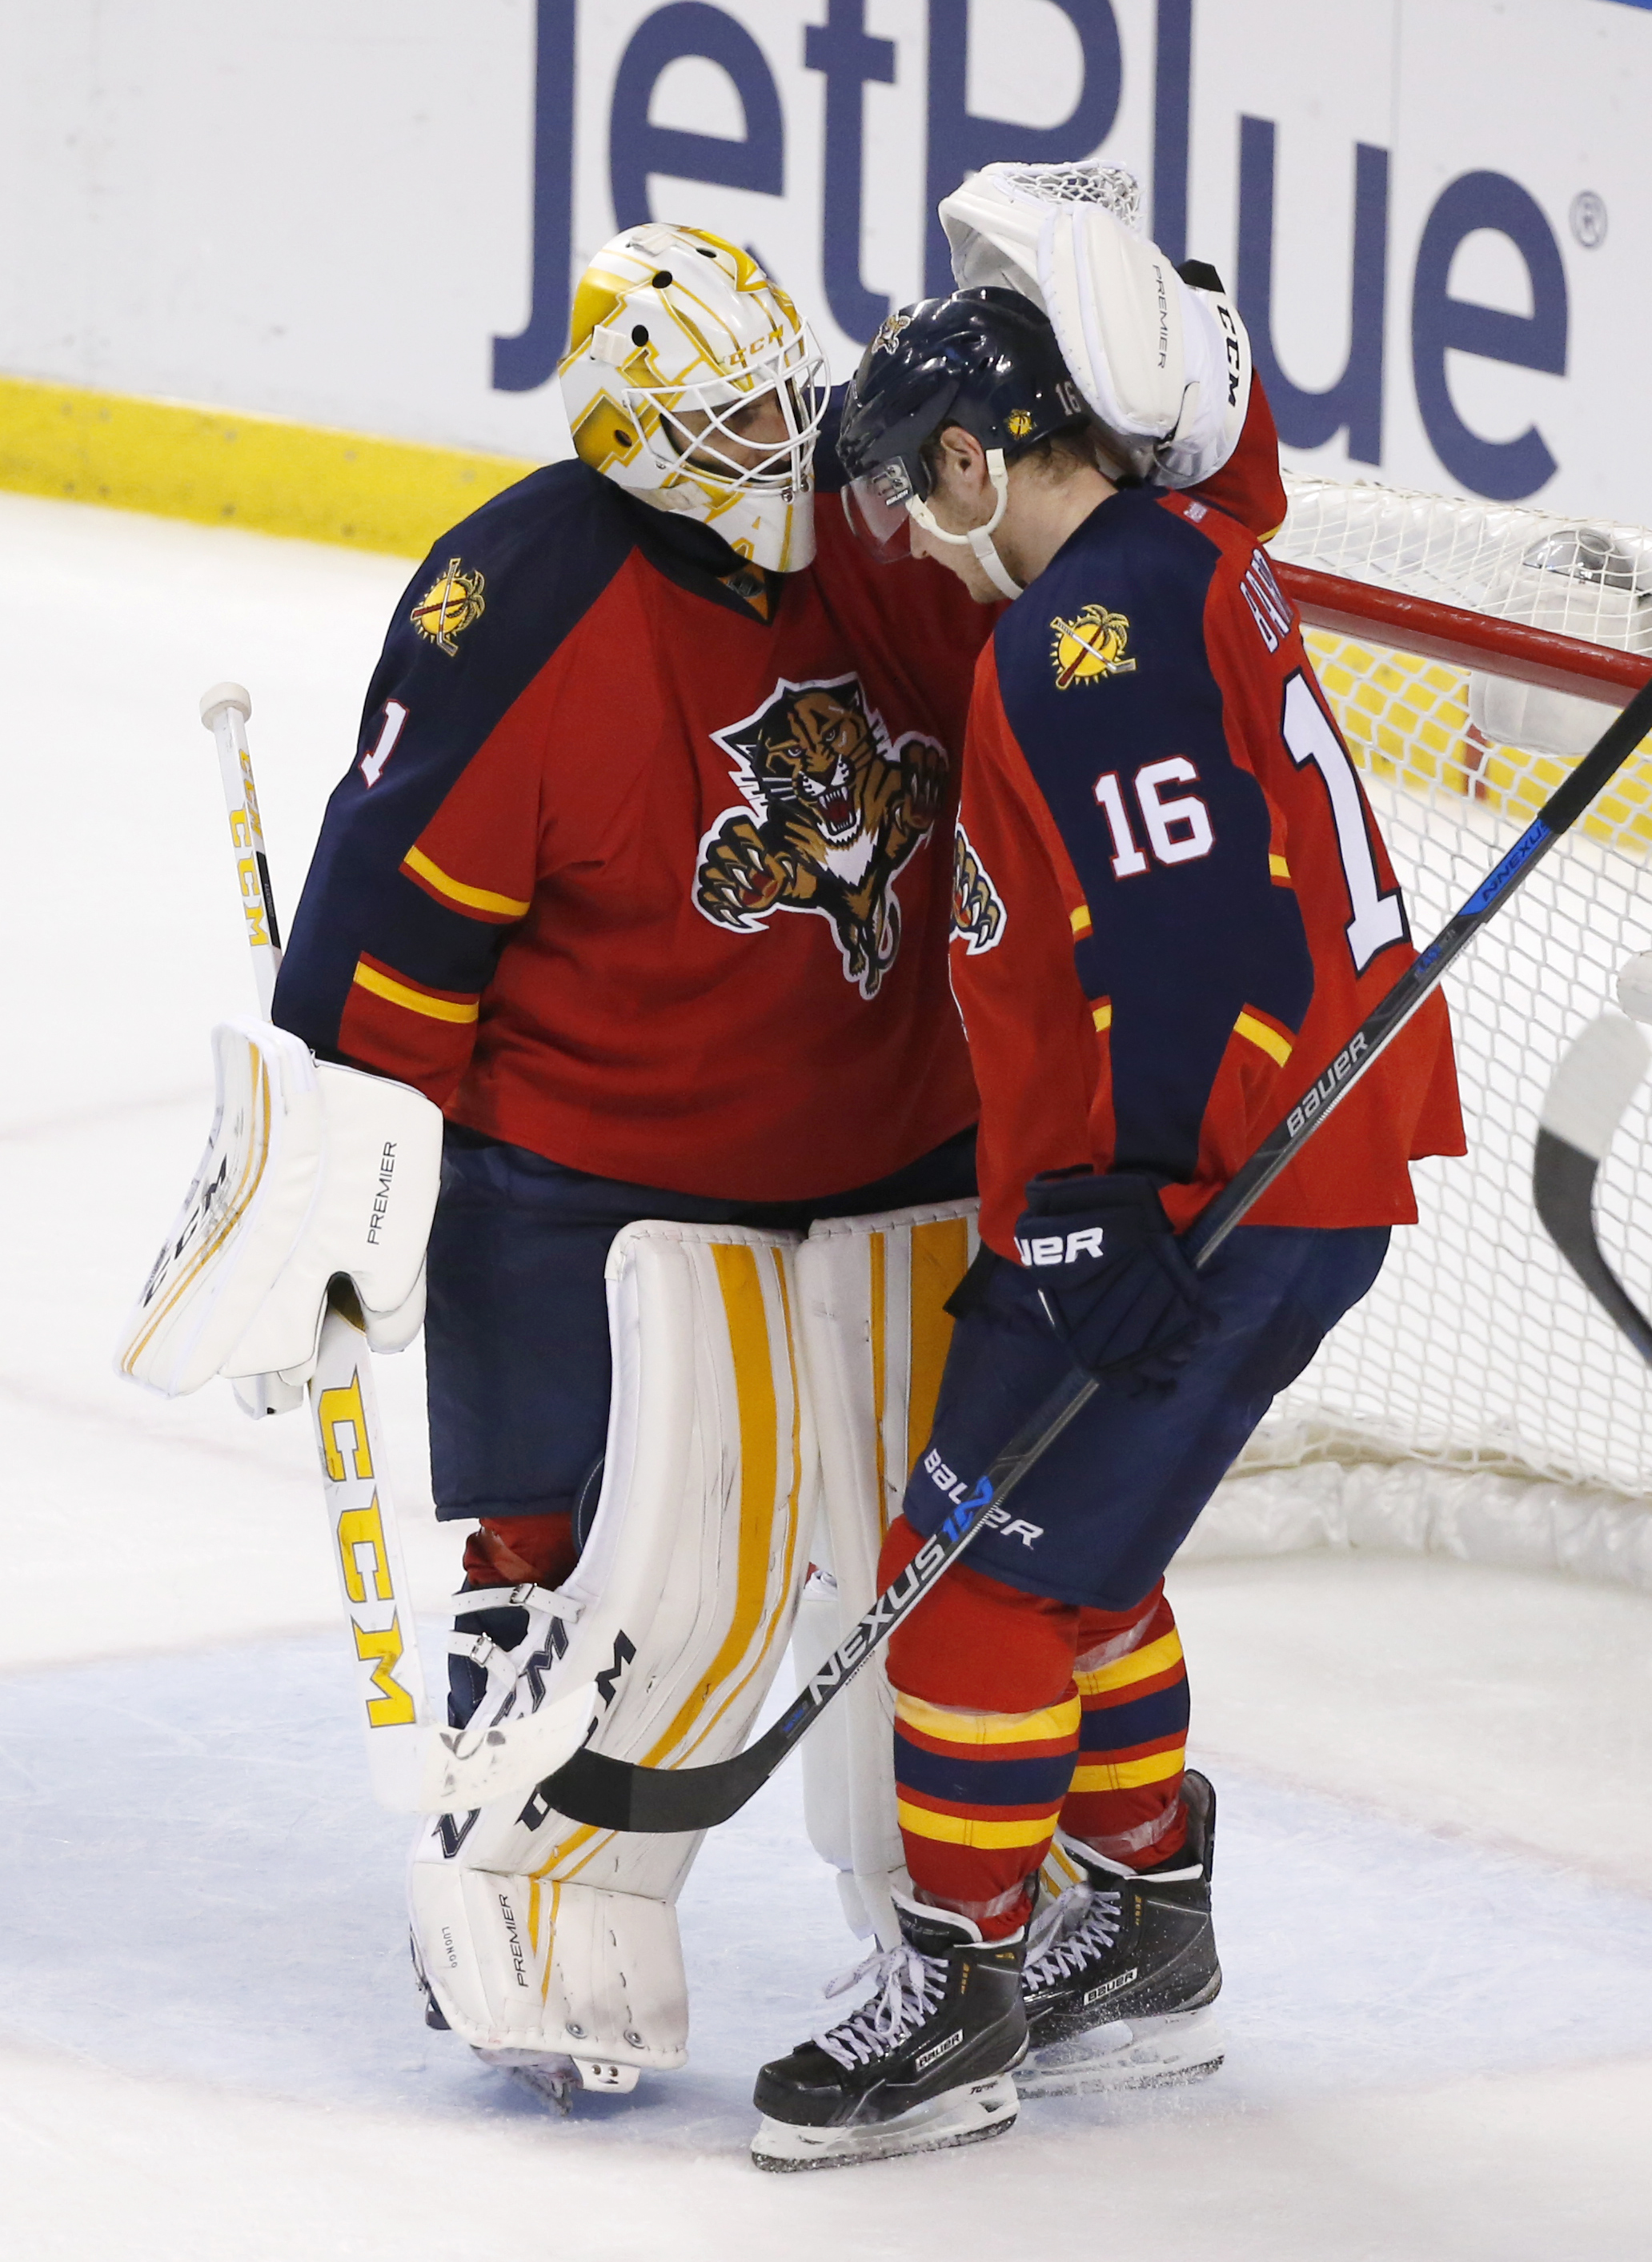 Florida Panthers goalie Roberto Luongo (1) and center Aleksander Barkov (16) celebrate after they defeated the Montreal Canadiens in an NHL hockey game, Saturday, April 2, 2016, in Sunrise, Fla. (AP Photo/Wilfredo Lee)